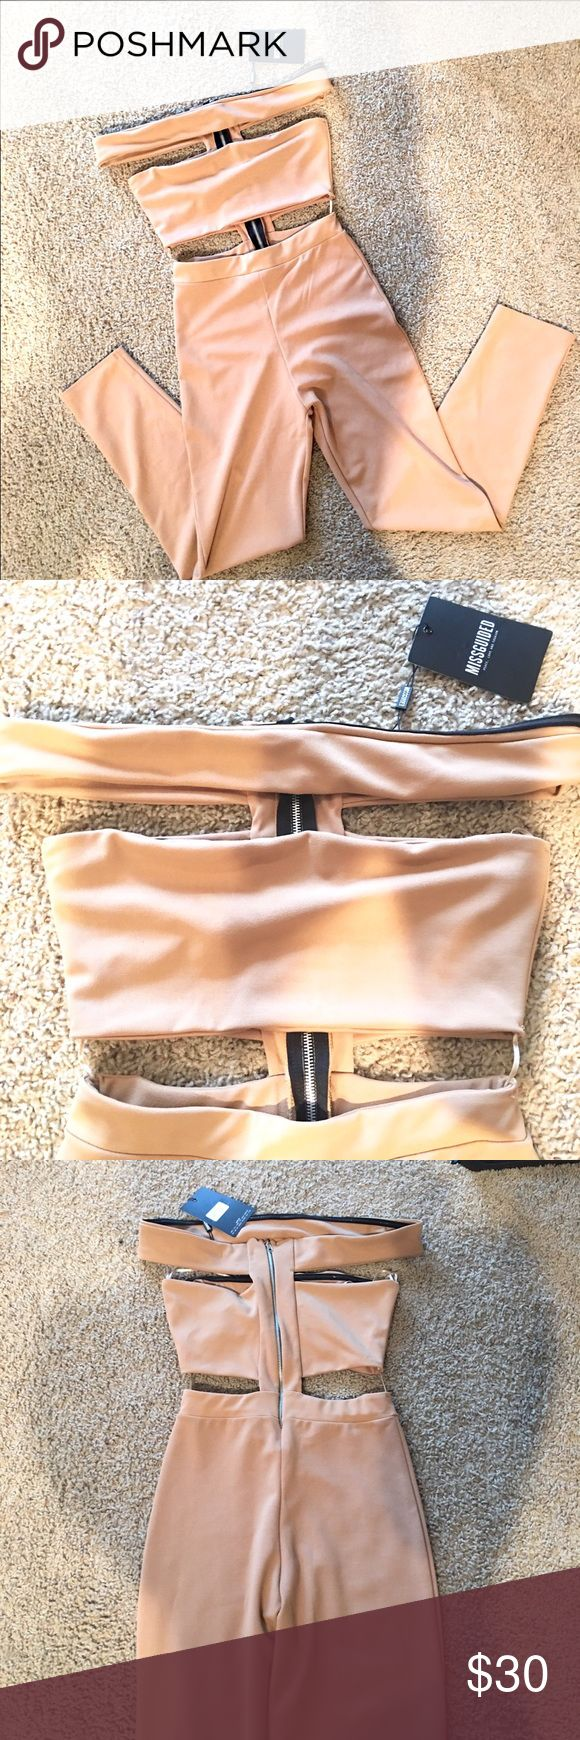 "NWT Missguided camel jumpsuit size US 6 Brand: MISSGUIDED.                                                NWT      Length: 52""     Pants Length: 41""                 Inseam: 29""          Bust: 29"" Missguided Pants Jumpsuits & Rompers"